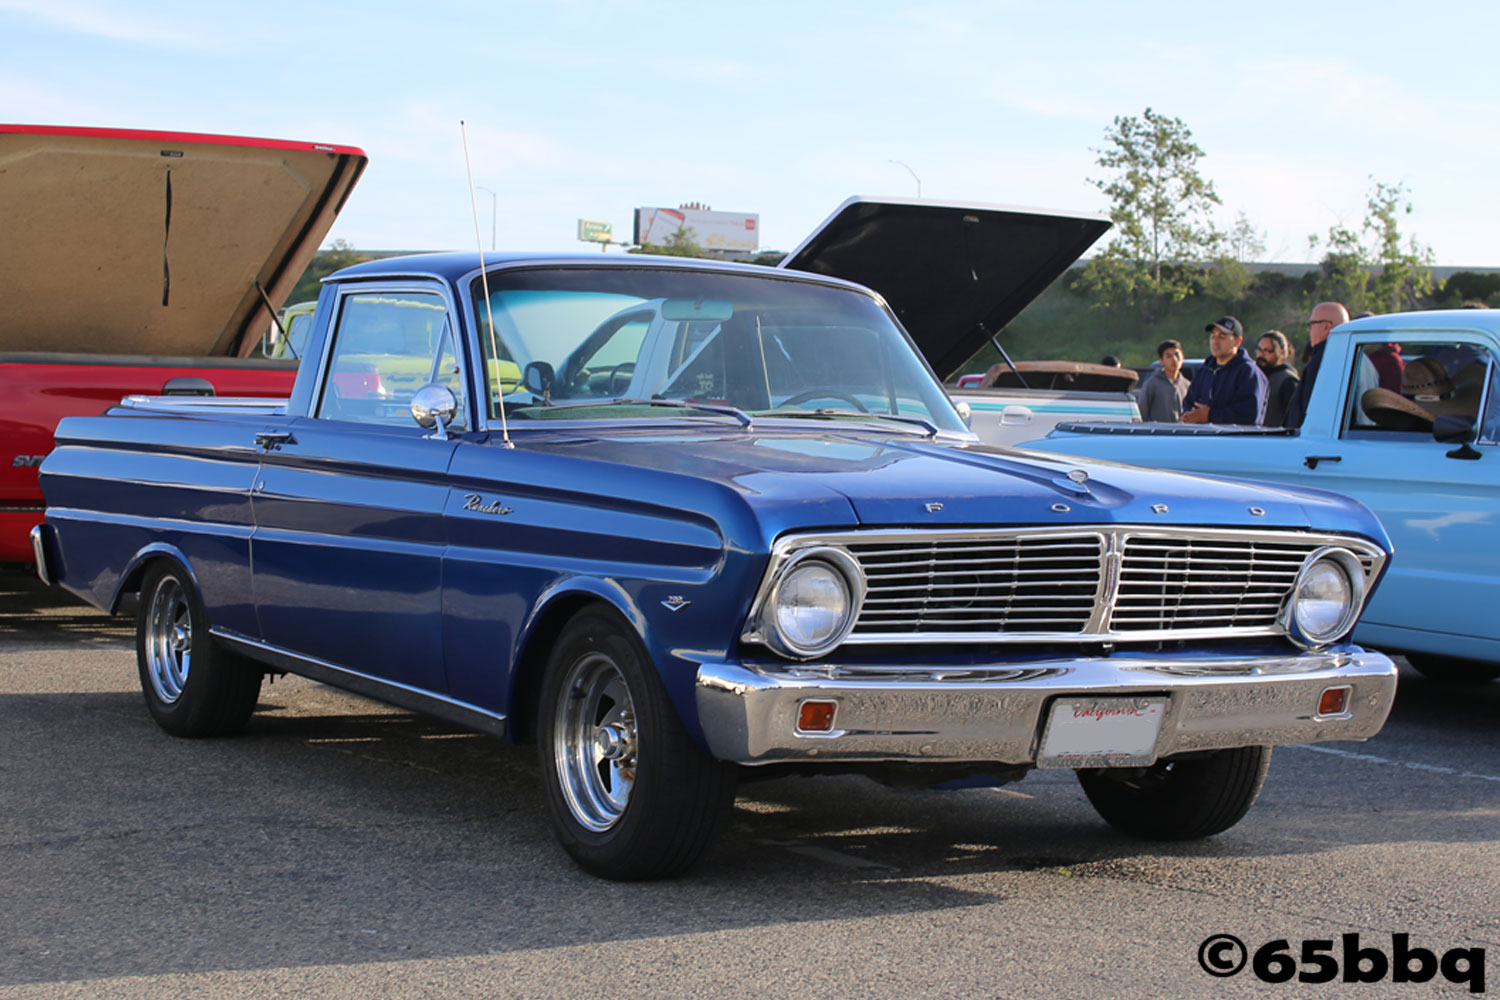 fabulous-fords-forever-april-2019-65bbq-r12.jpg